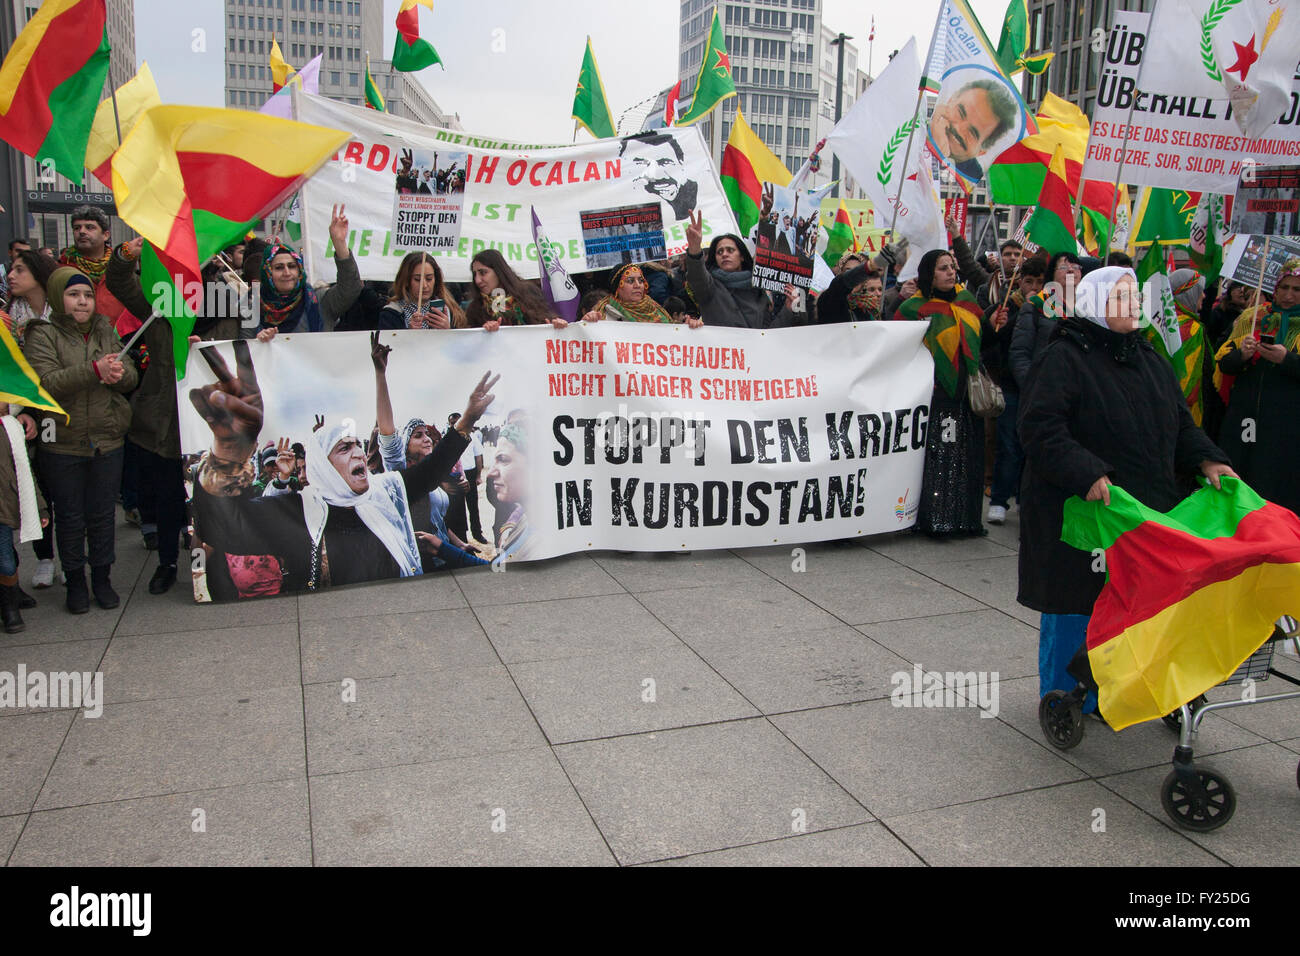 Kurds protesting against Turkish government, demanding an end to the war in Kurdistan. Berlin, Germany. - Stock Image